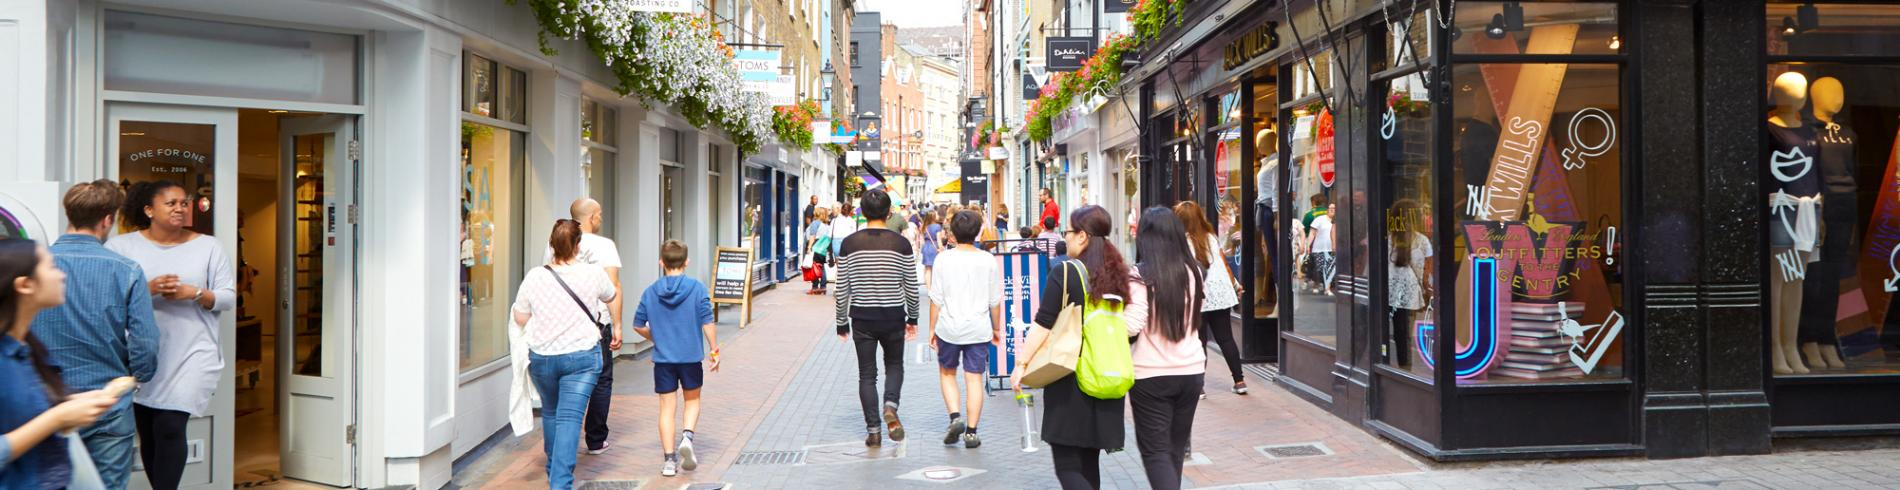 People shopping on Carnaby Street